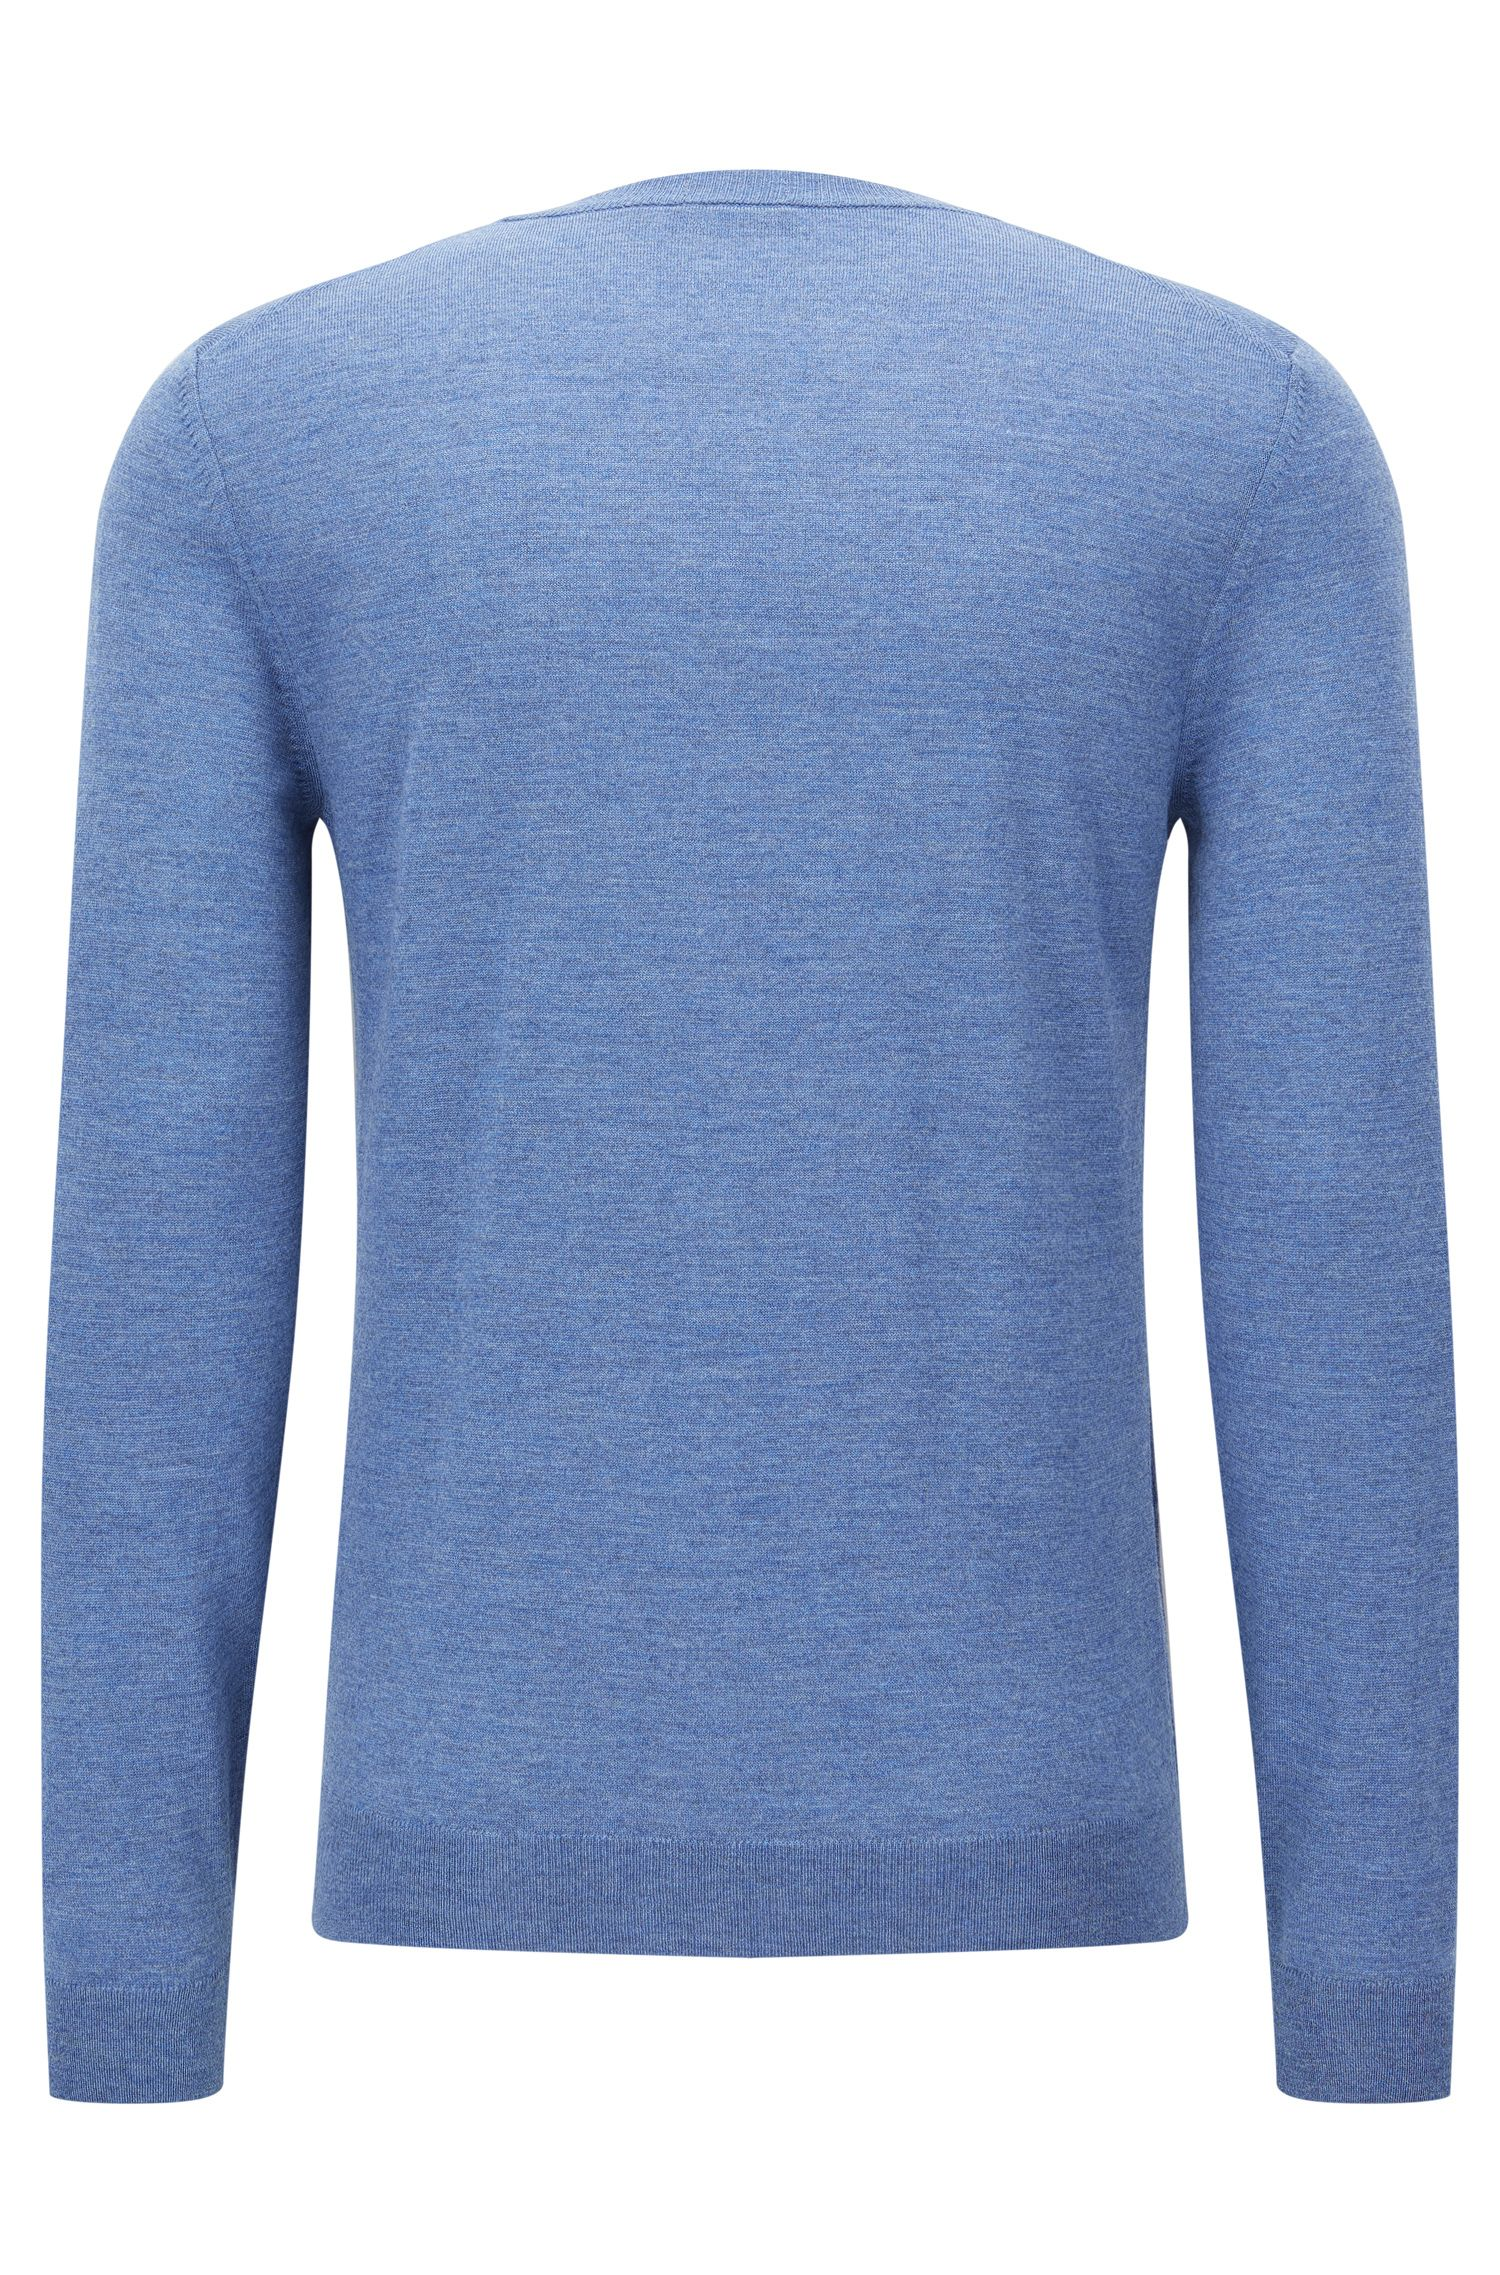 Extra-Fine Virgin Merino Wool Sweater, Slim FIt | Mardon M, Open Blue